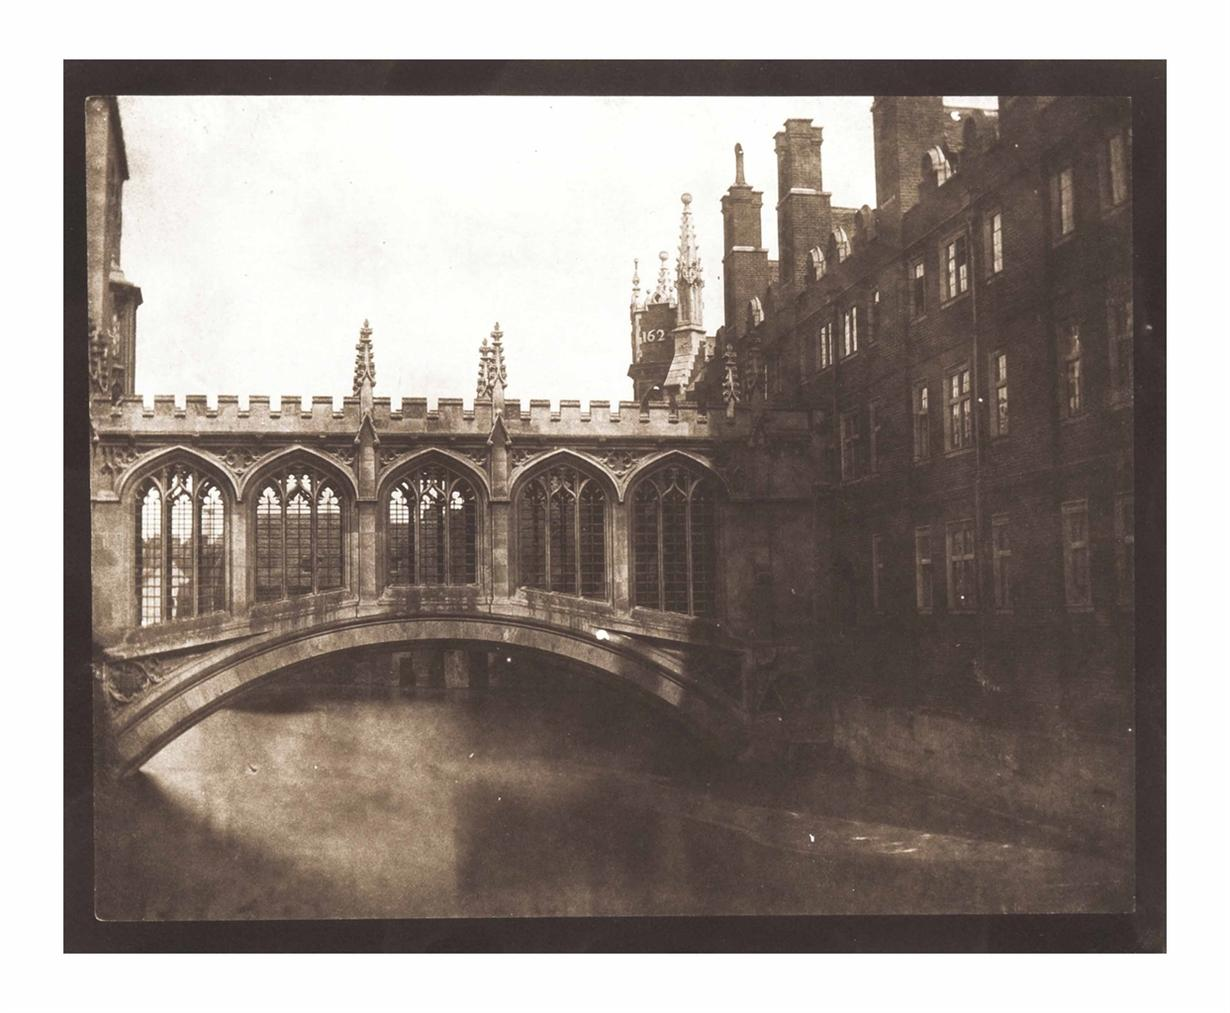 William Henry Fox Talbot-The Bridge Of Sighs, Saint John's College, Cambridge-1845